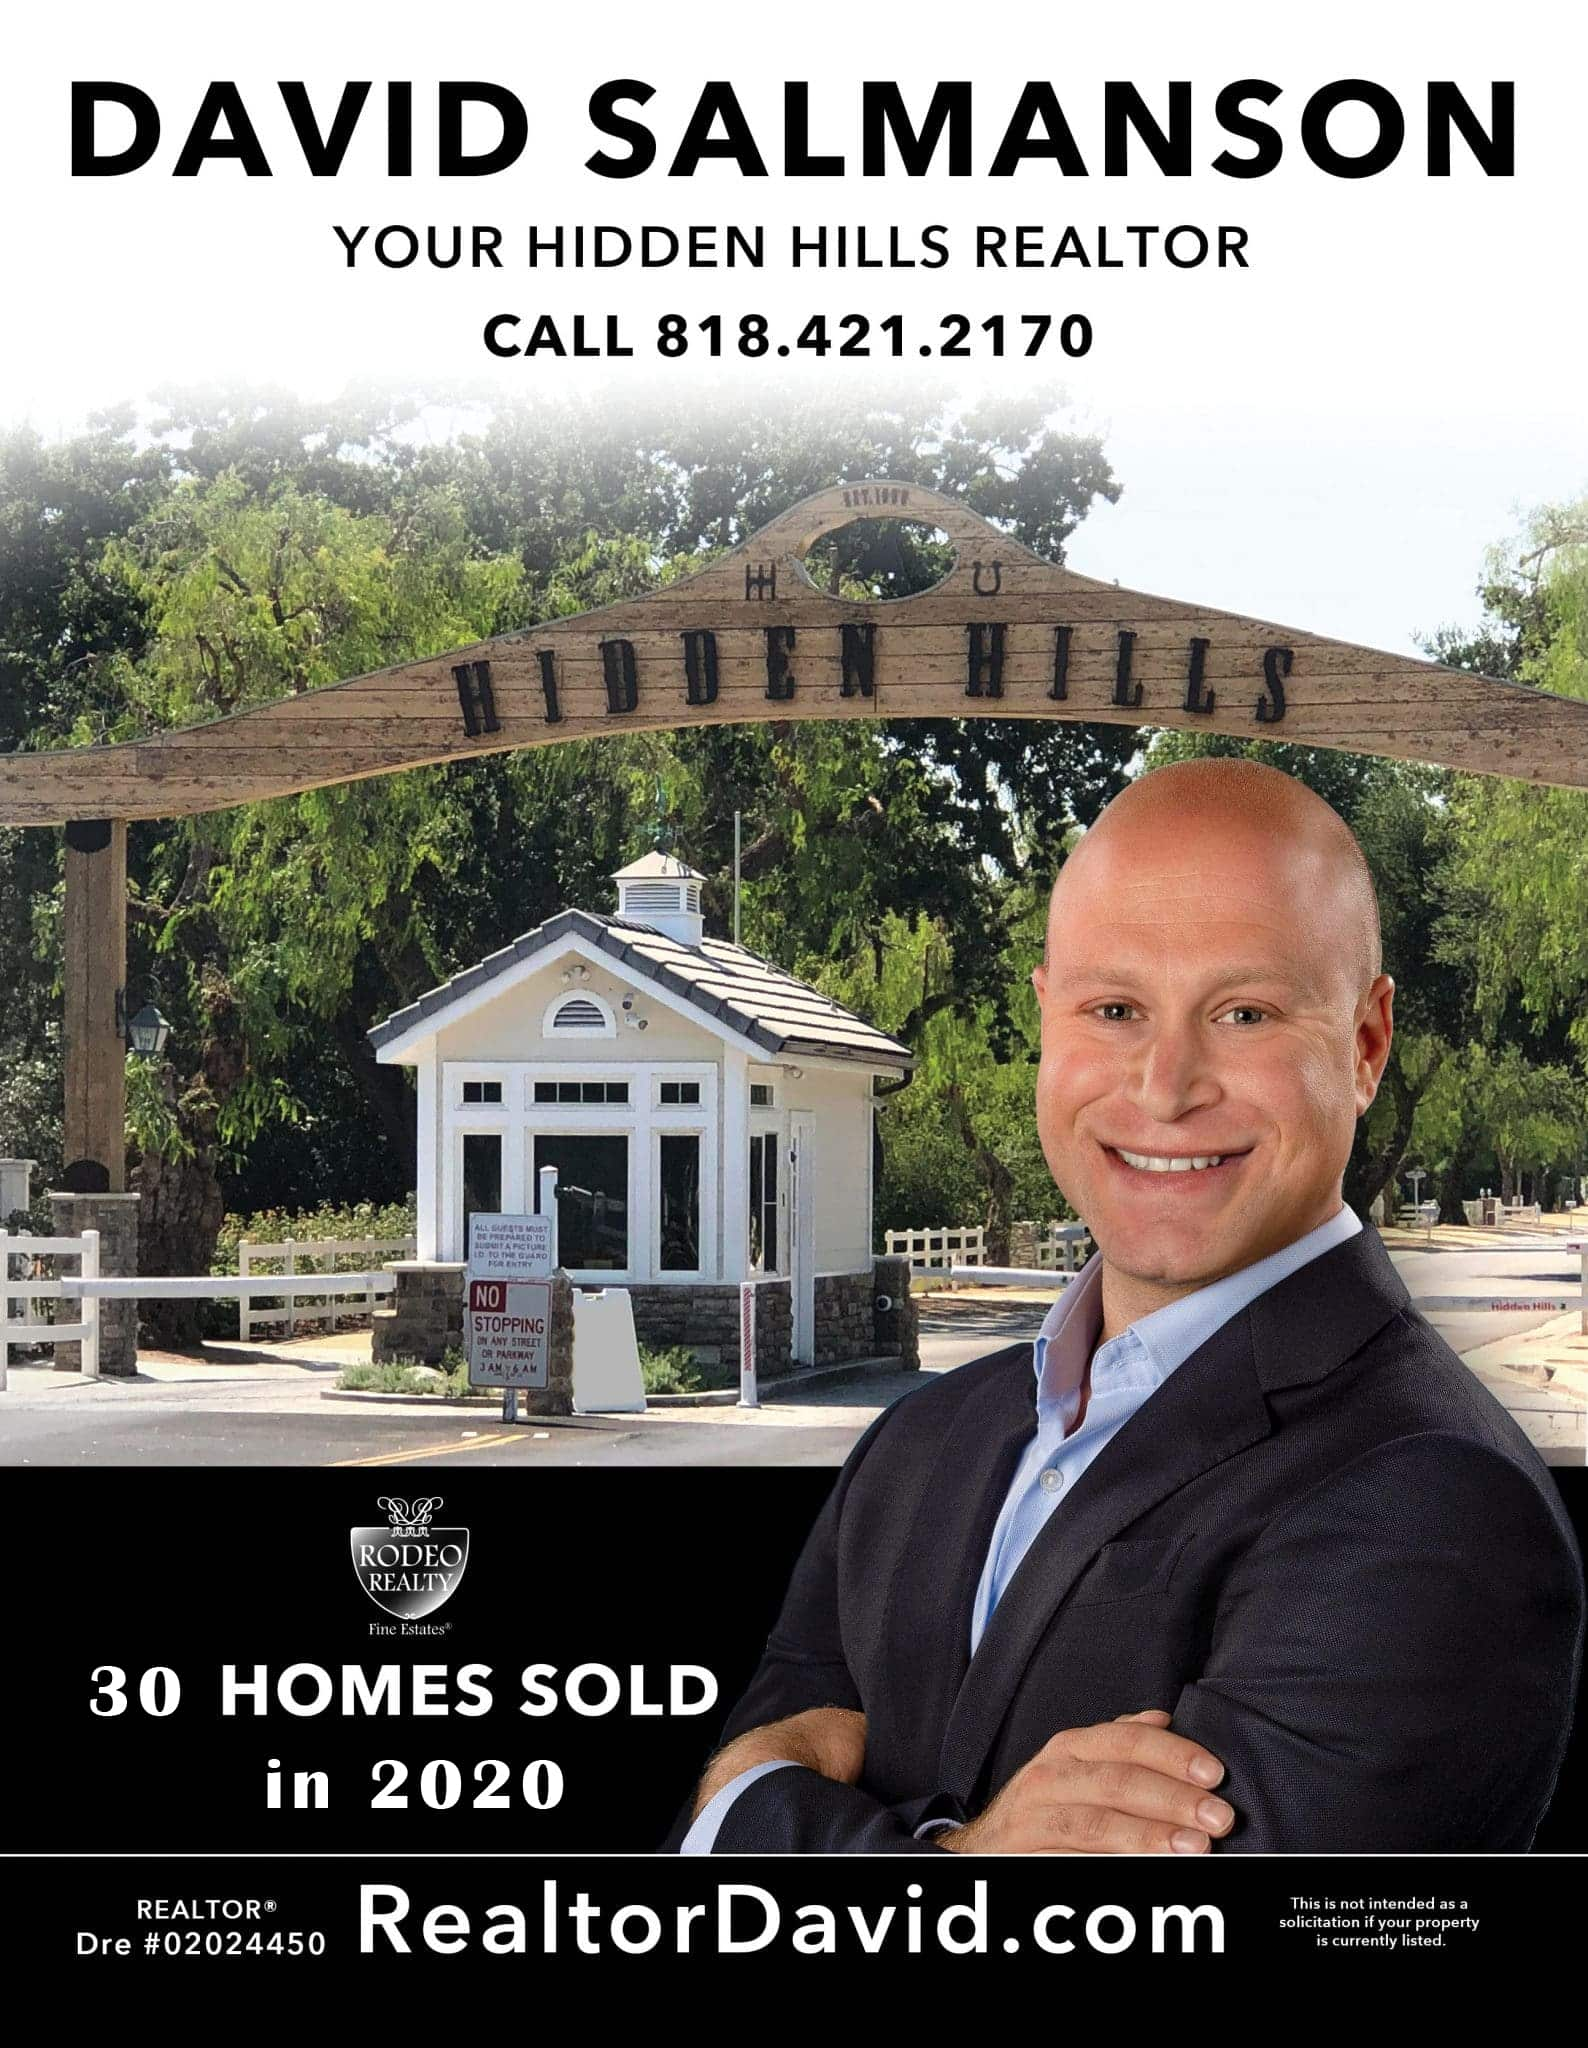 Hidden Hills Realtor and Real Estate Agent